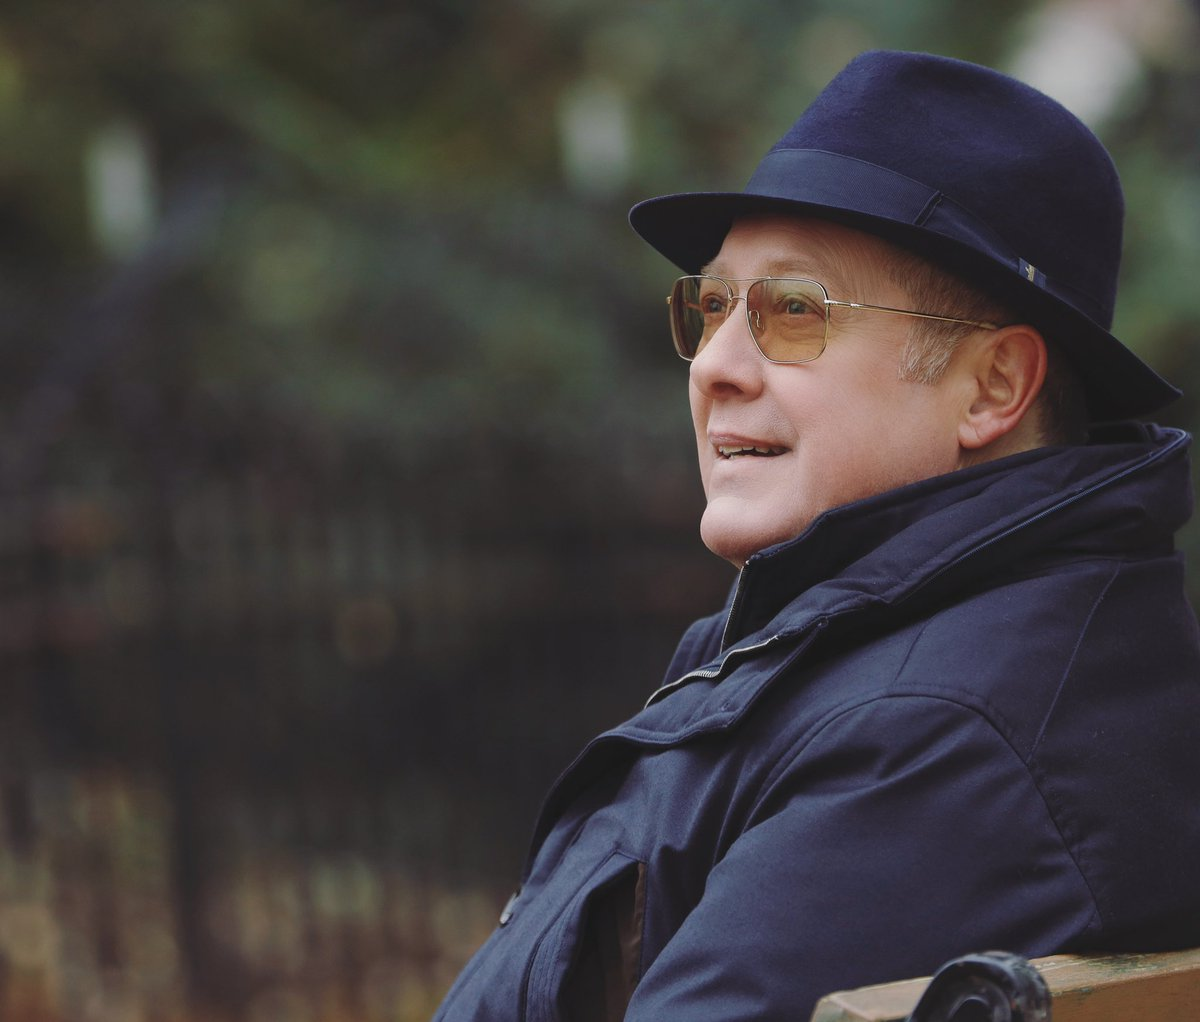 Happy birthday to the incredibly talented, #JamesSpader. Help me wish him a happy birthday by commenting below.